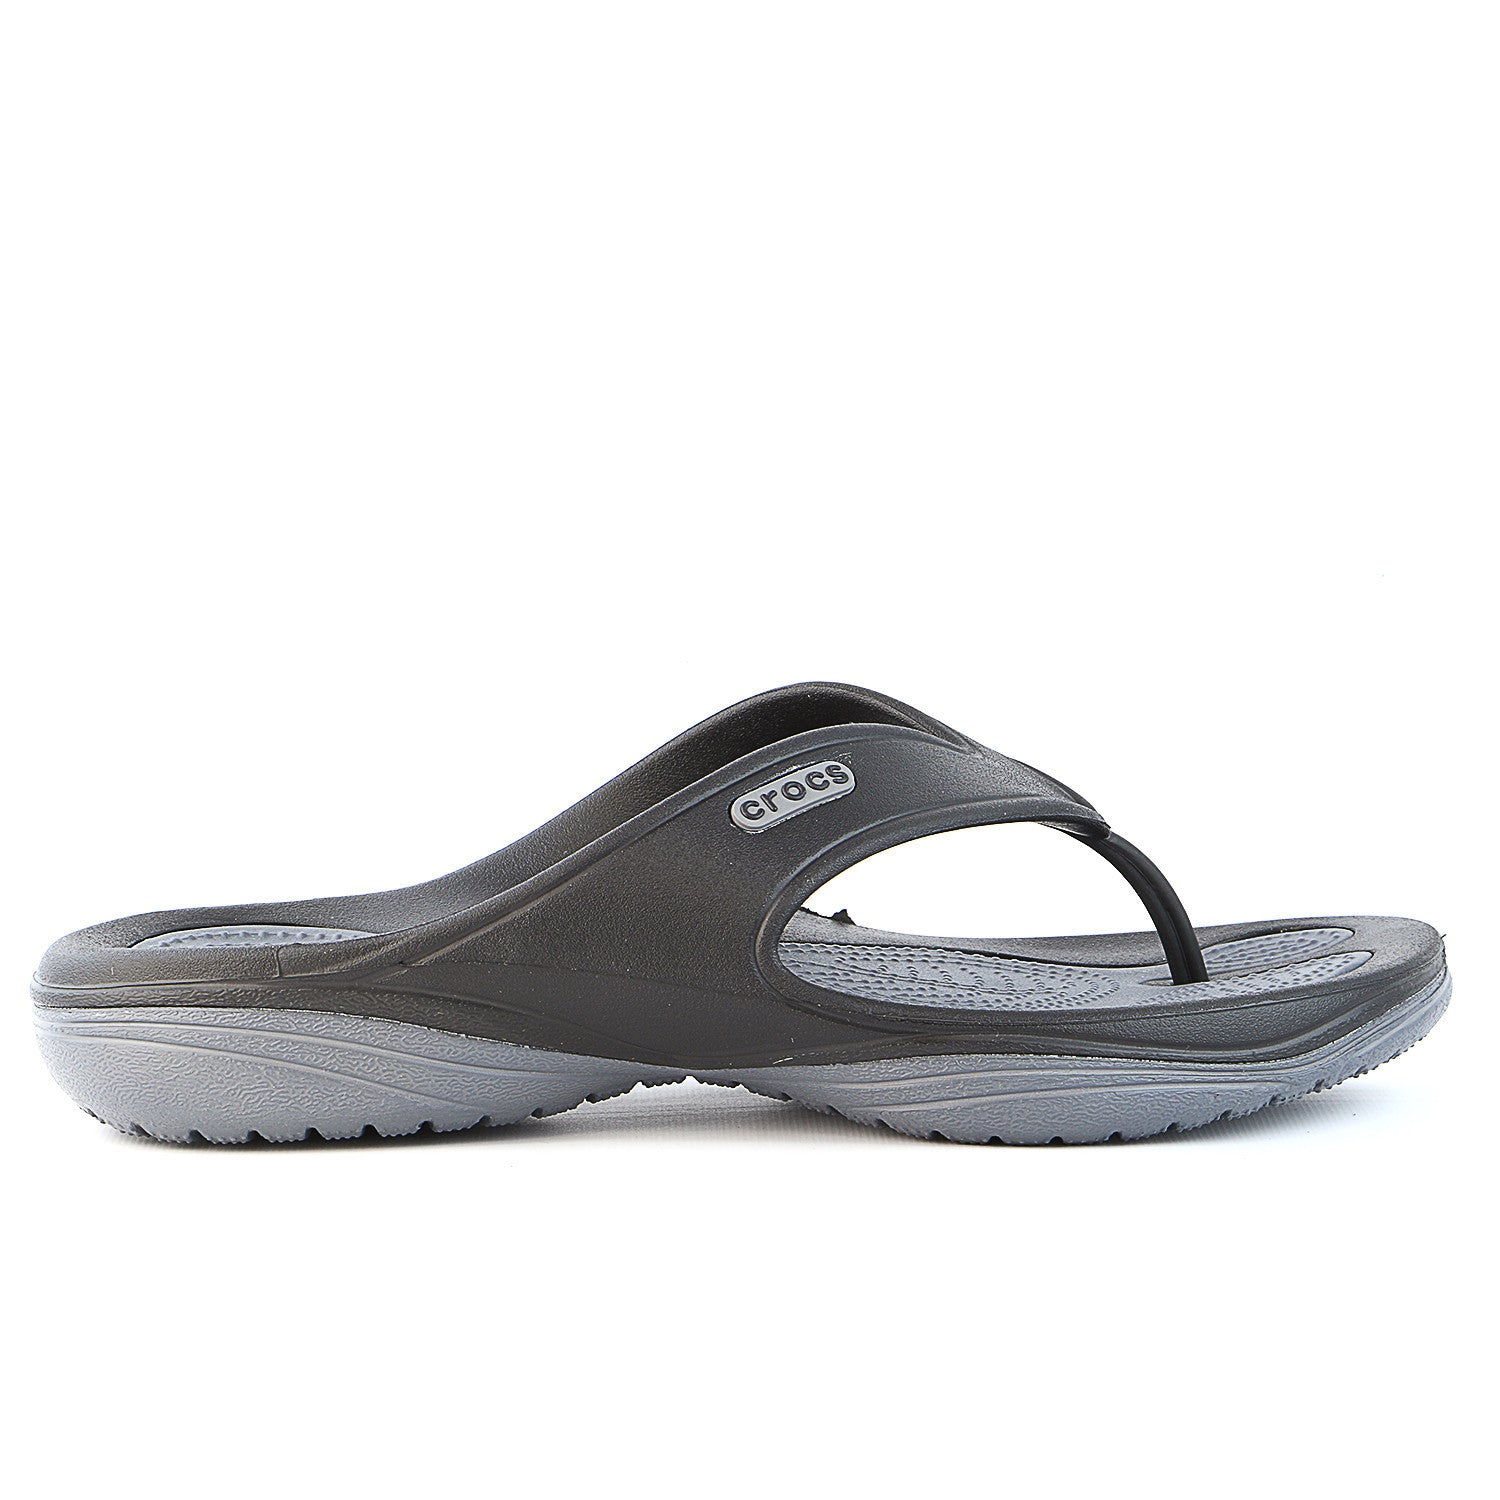 9327139bf Crocs Unisex MODI 2.0 Flip - Black Charcoal - Womens - Shoplifestyle